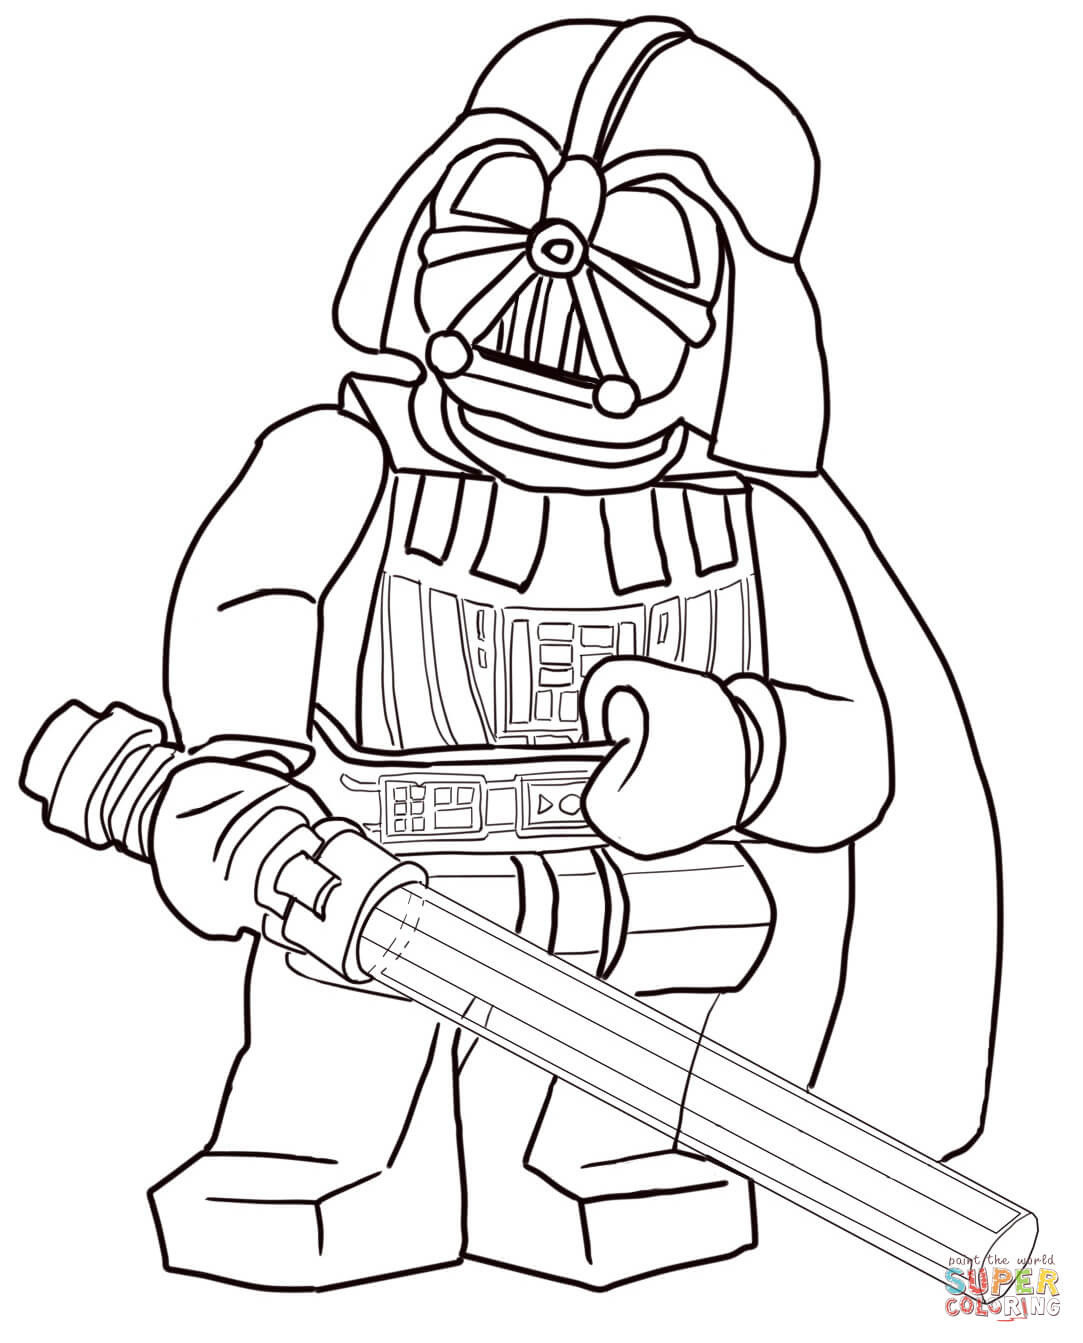 Star Wars Ausmalbilder Darth Vader Genial Awesome Darth Vader Coloring Pages Coloring Elegant Ausmalbilder Bild